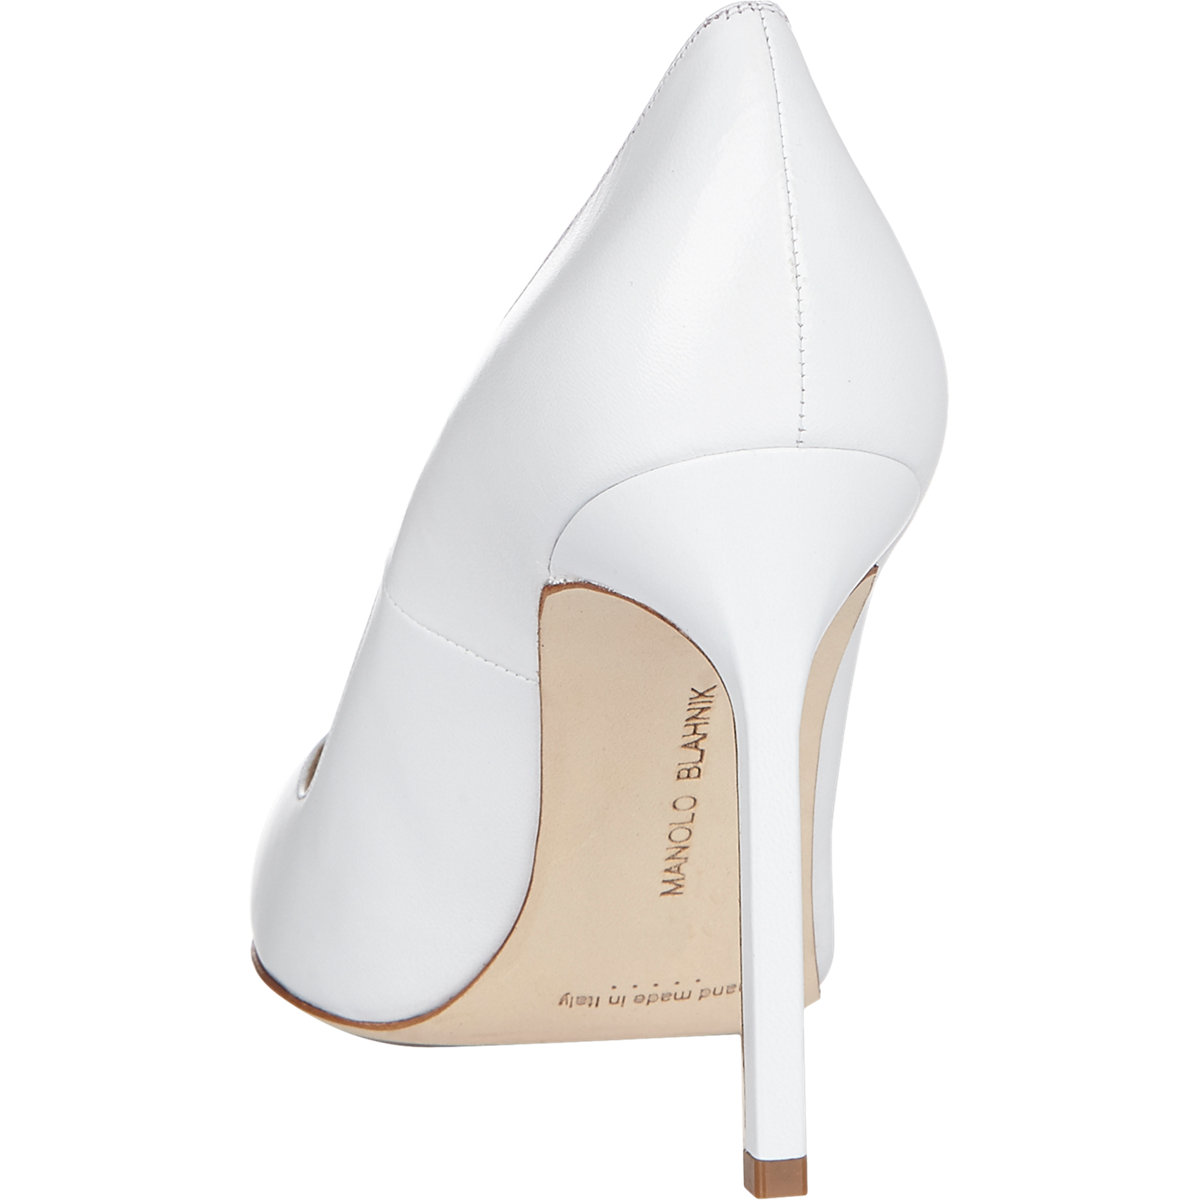 Manolo blahnik bb pumps at barneys.com